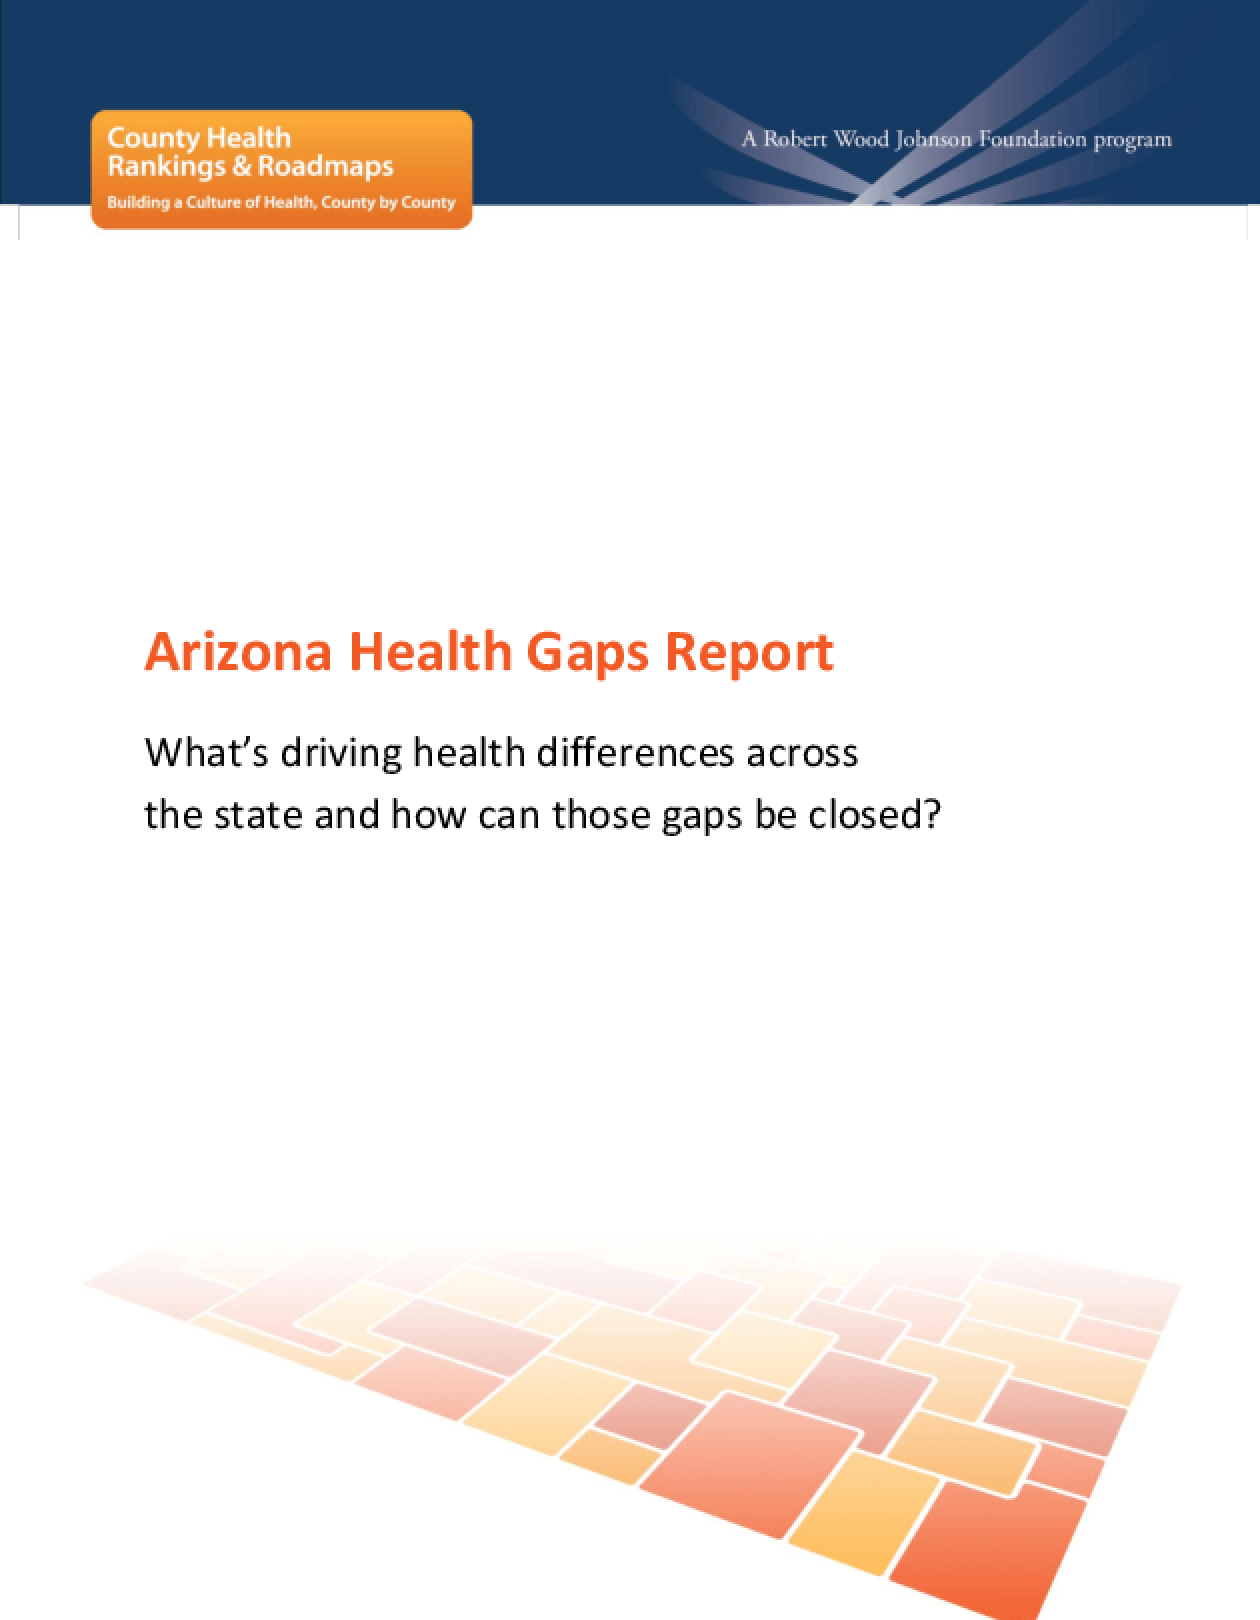 Arizona Health Gaps Report: What's Driving Health Differences Across the State and How Can Those Gaps Be Closed?